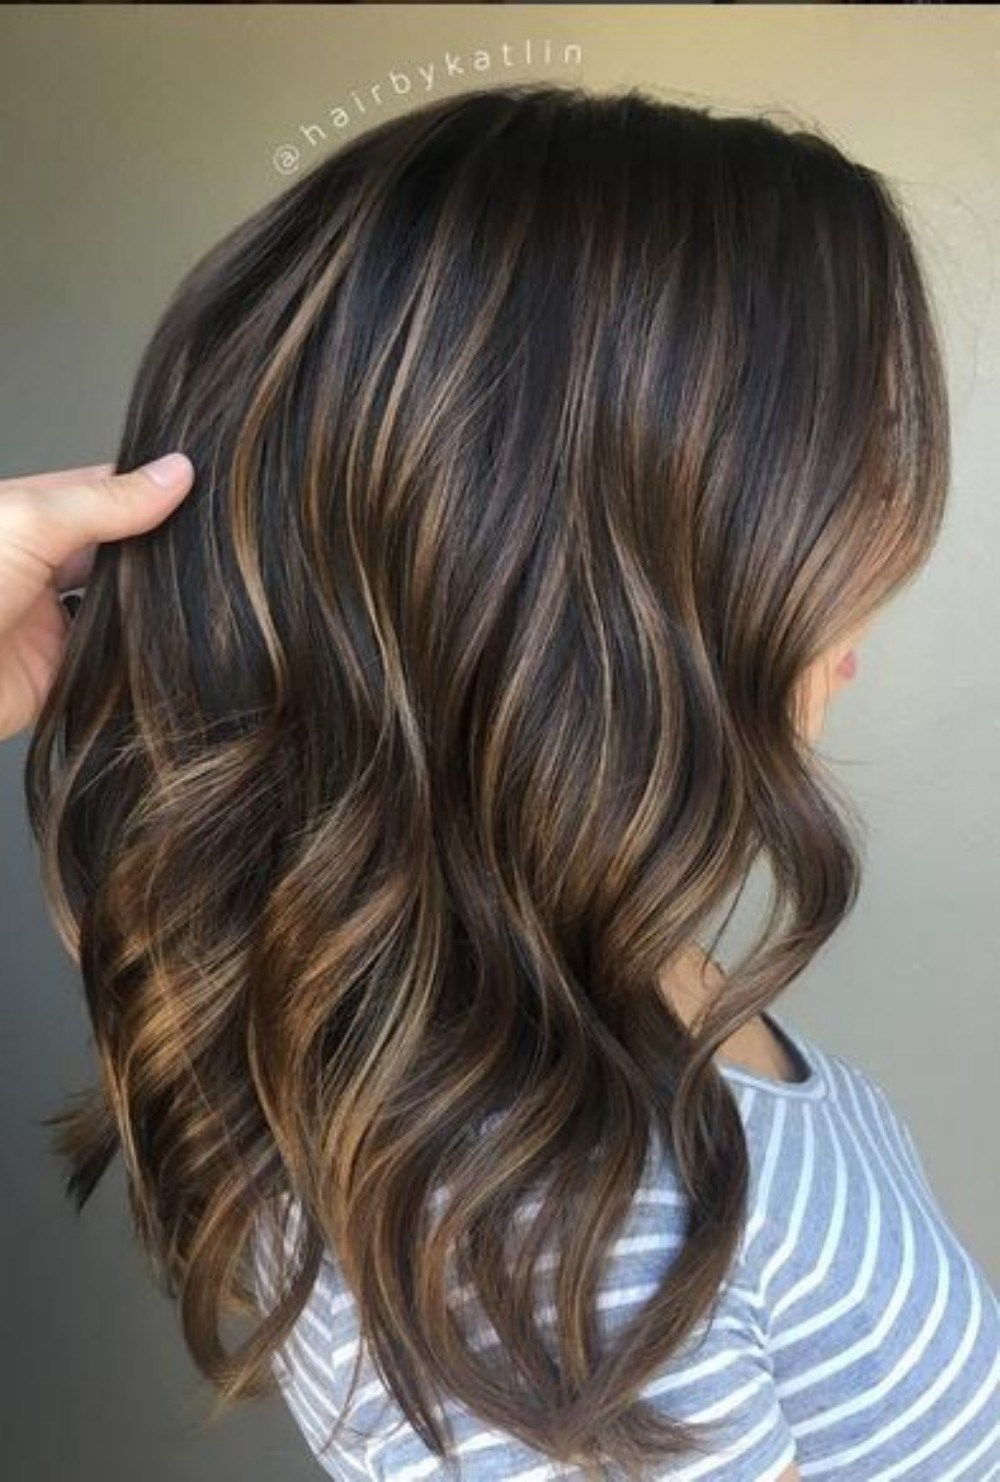 10 Spectacular Hair Color Ideas For Fall top brunette hair color ideas to try 2017 17 hairstyle 5 2020